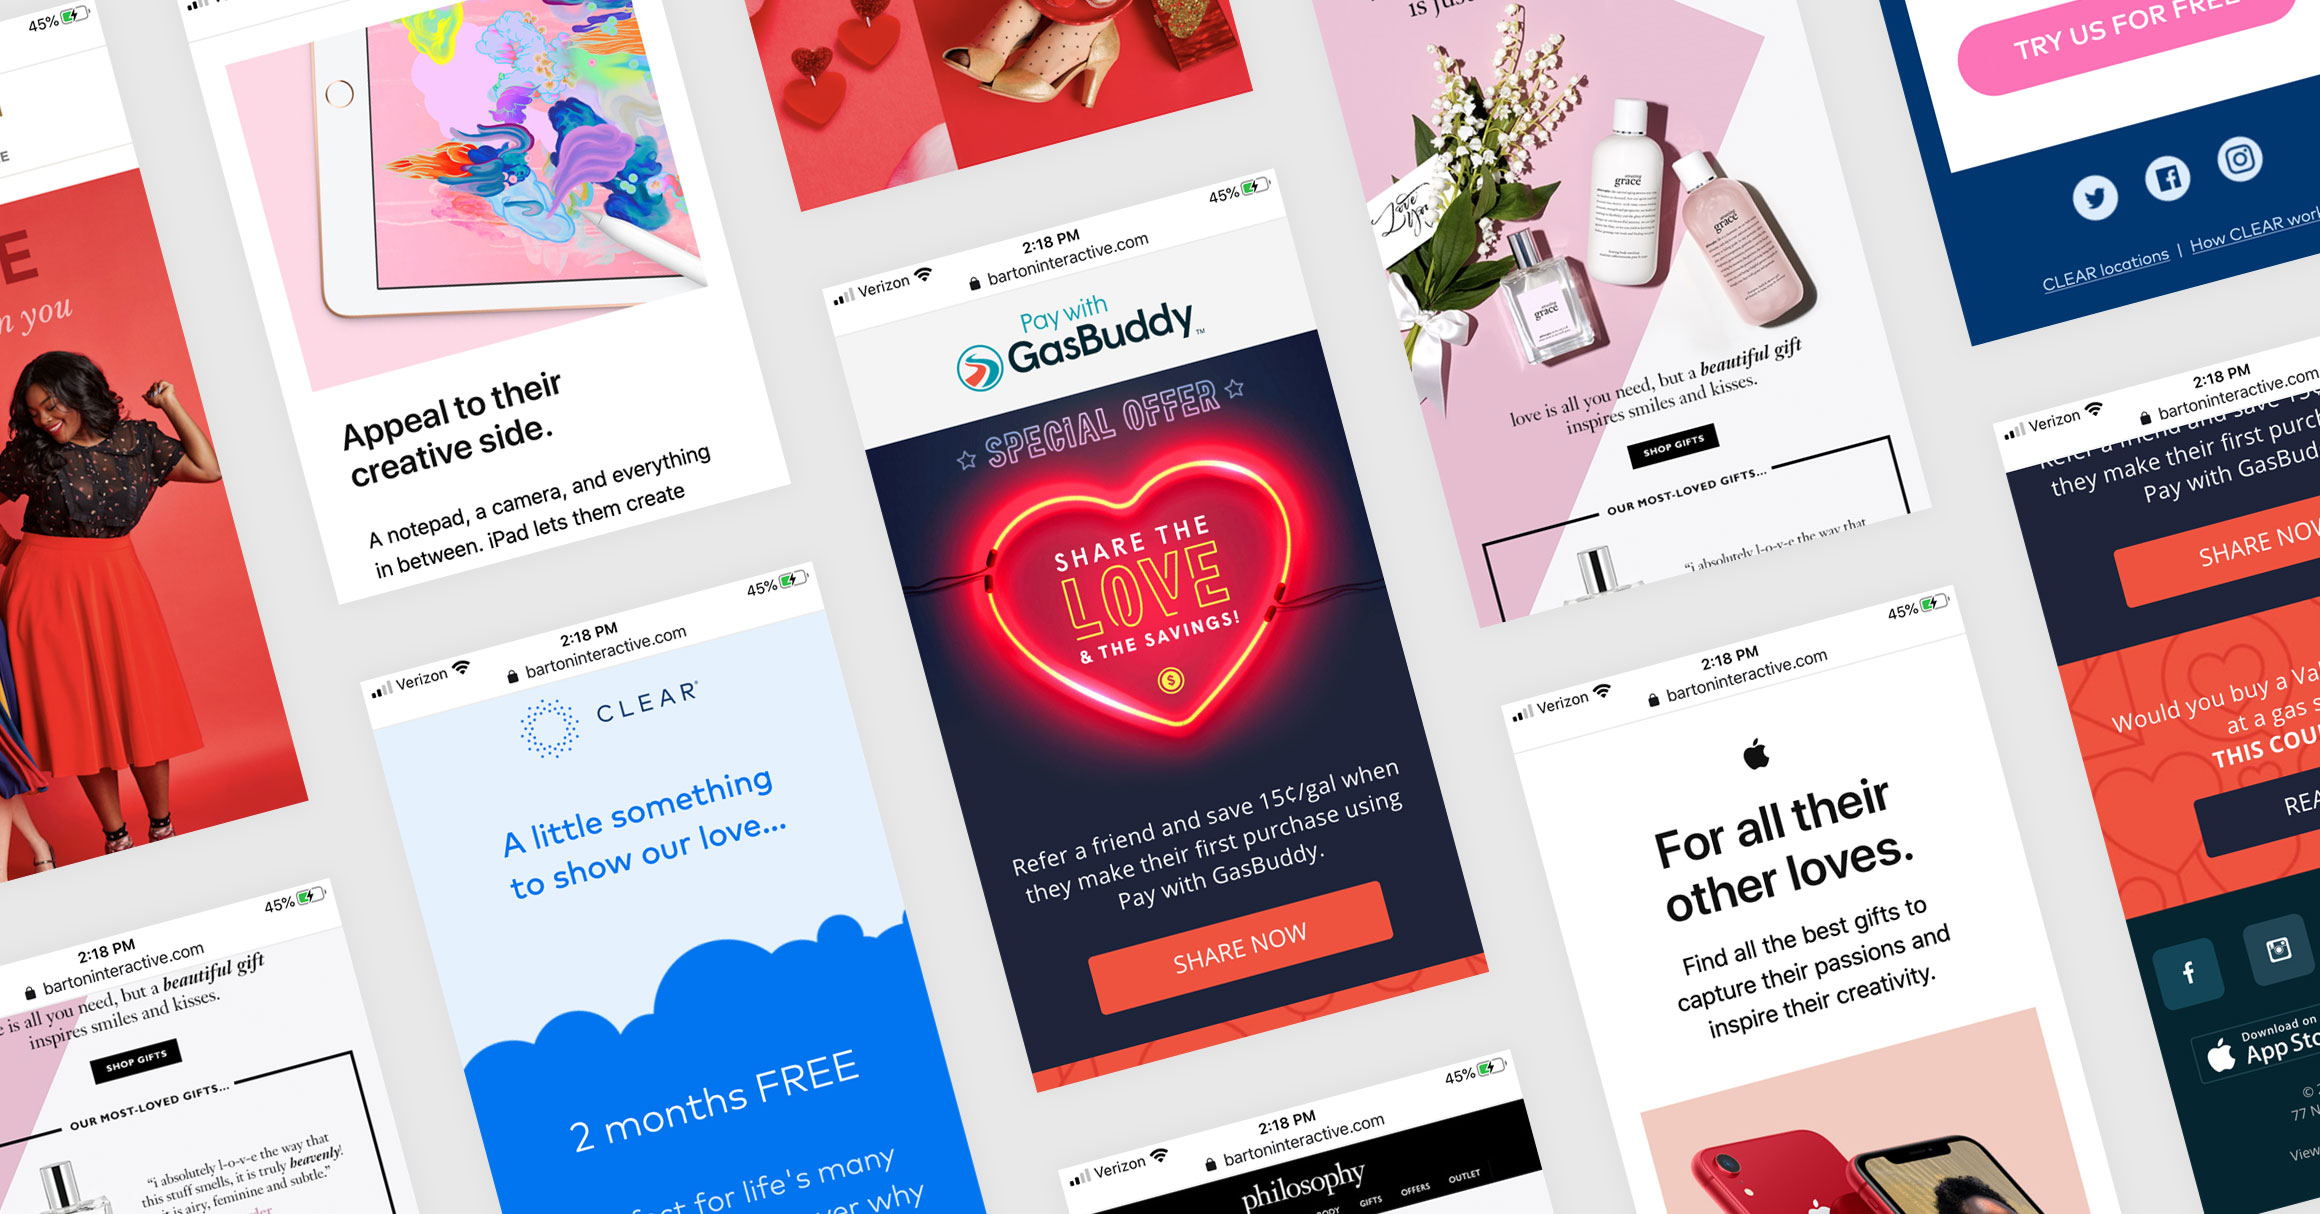 Valentine's Day Email Roundup